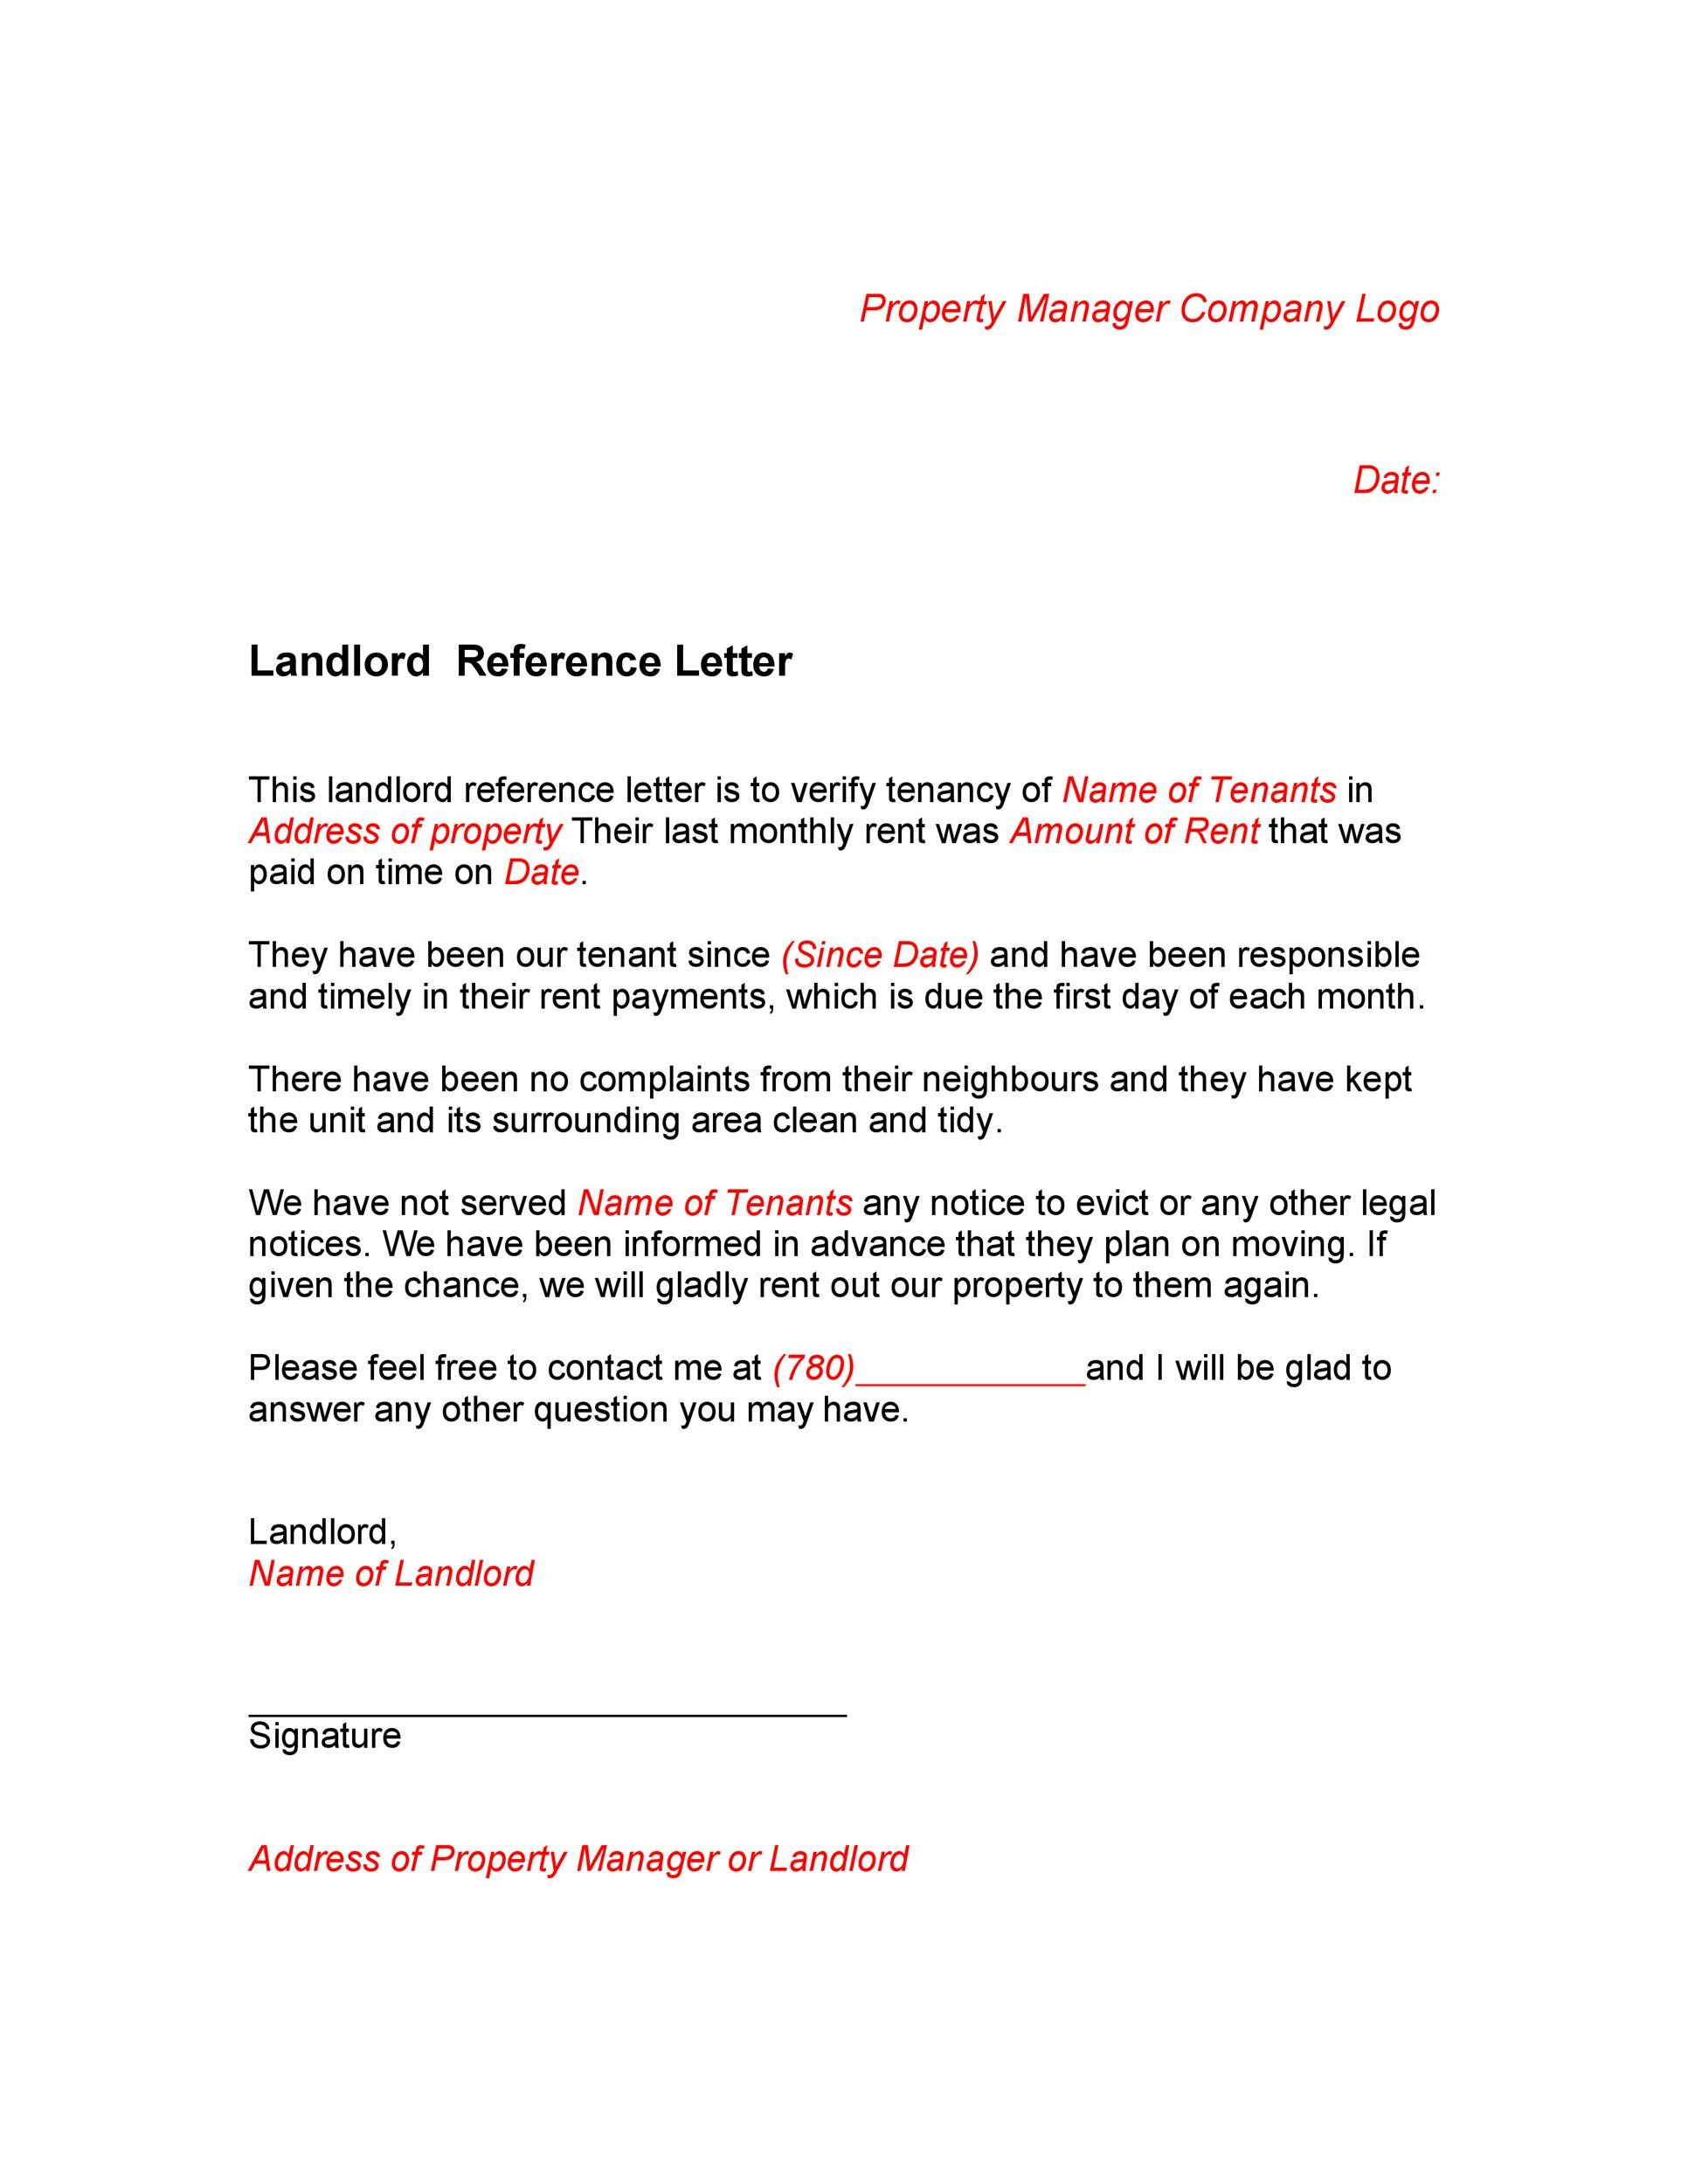 landlord recomendation letter recommendation letter from landlord - Jose.mulinohouse.co